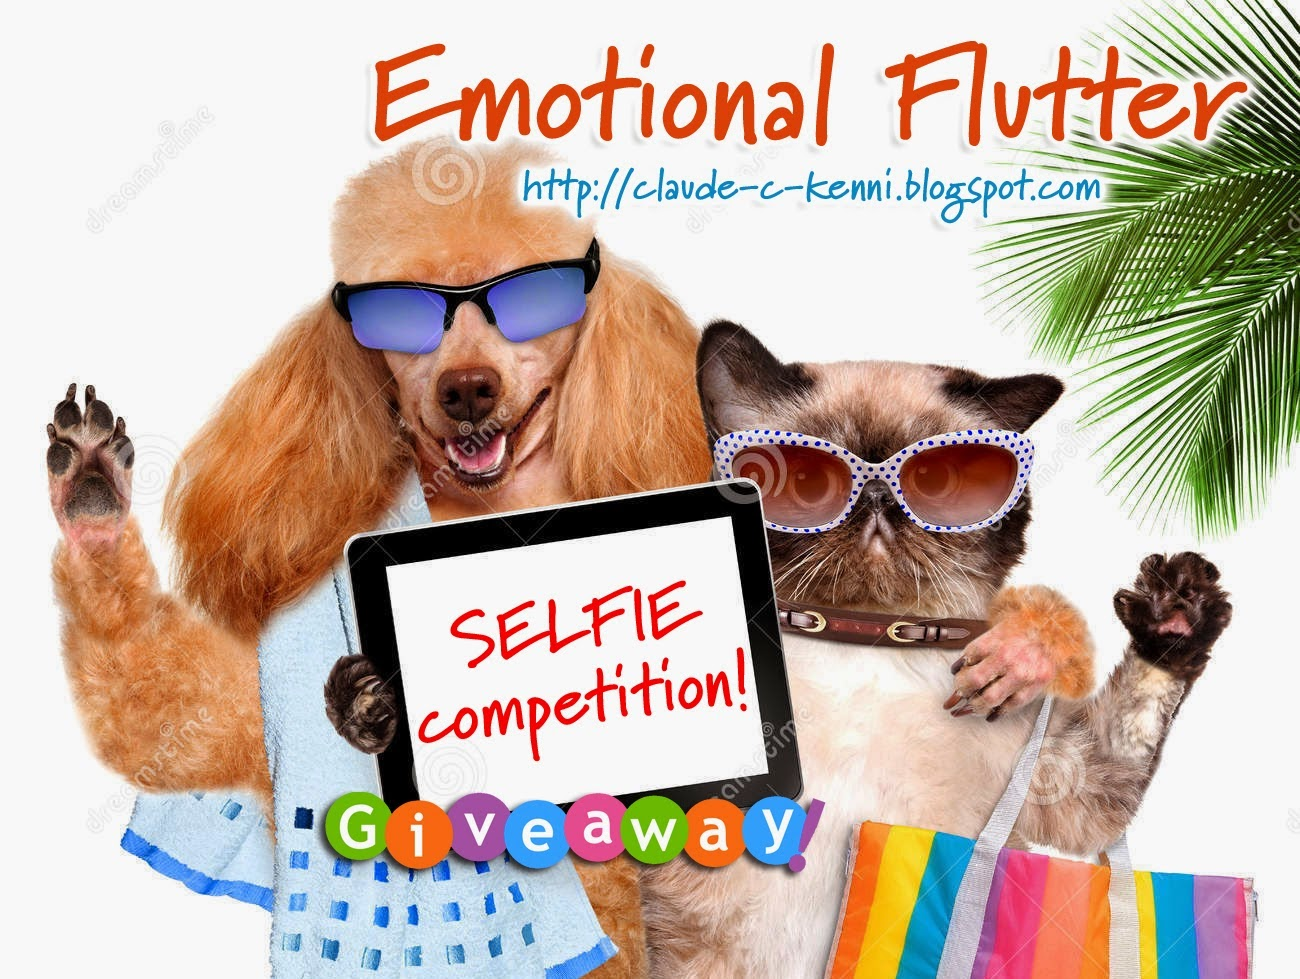 http://www.claude-c-kenni.blogspot.com/2014/07/emotional-flutter-selfie-competition.html